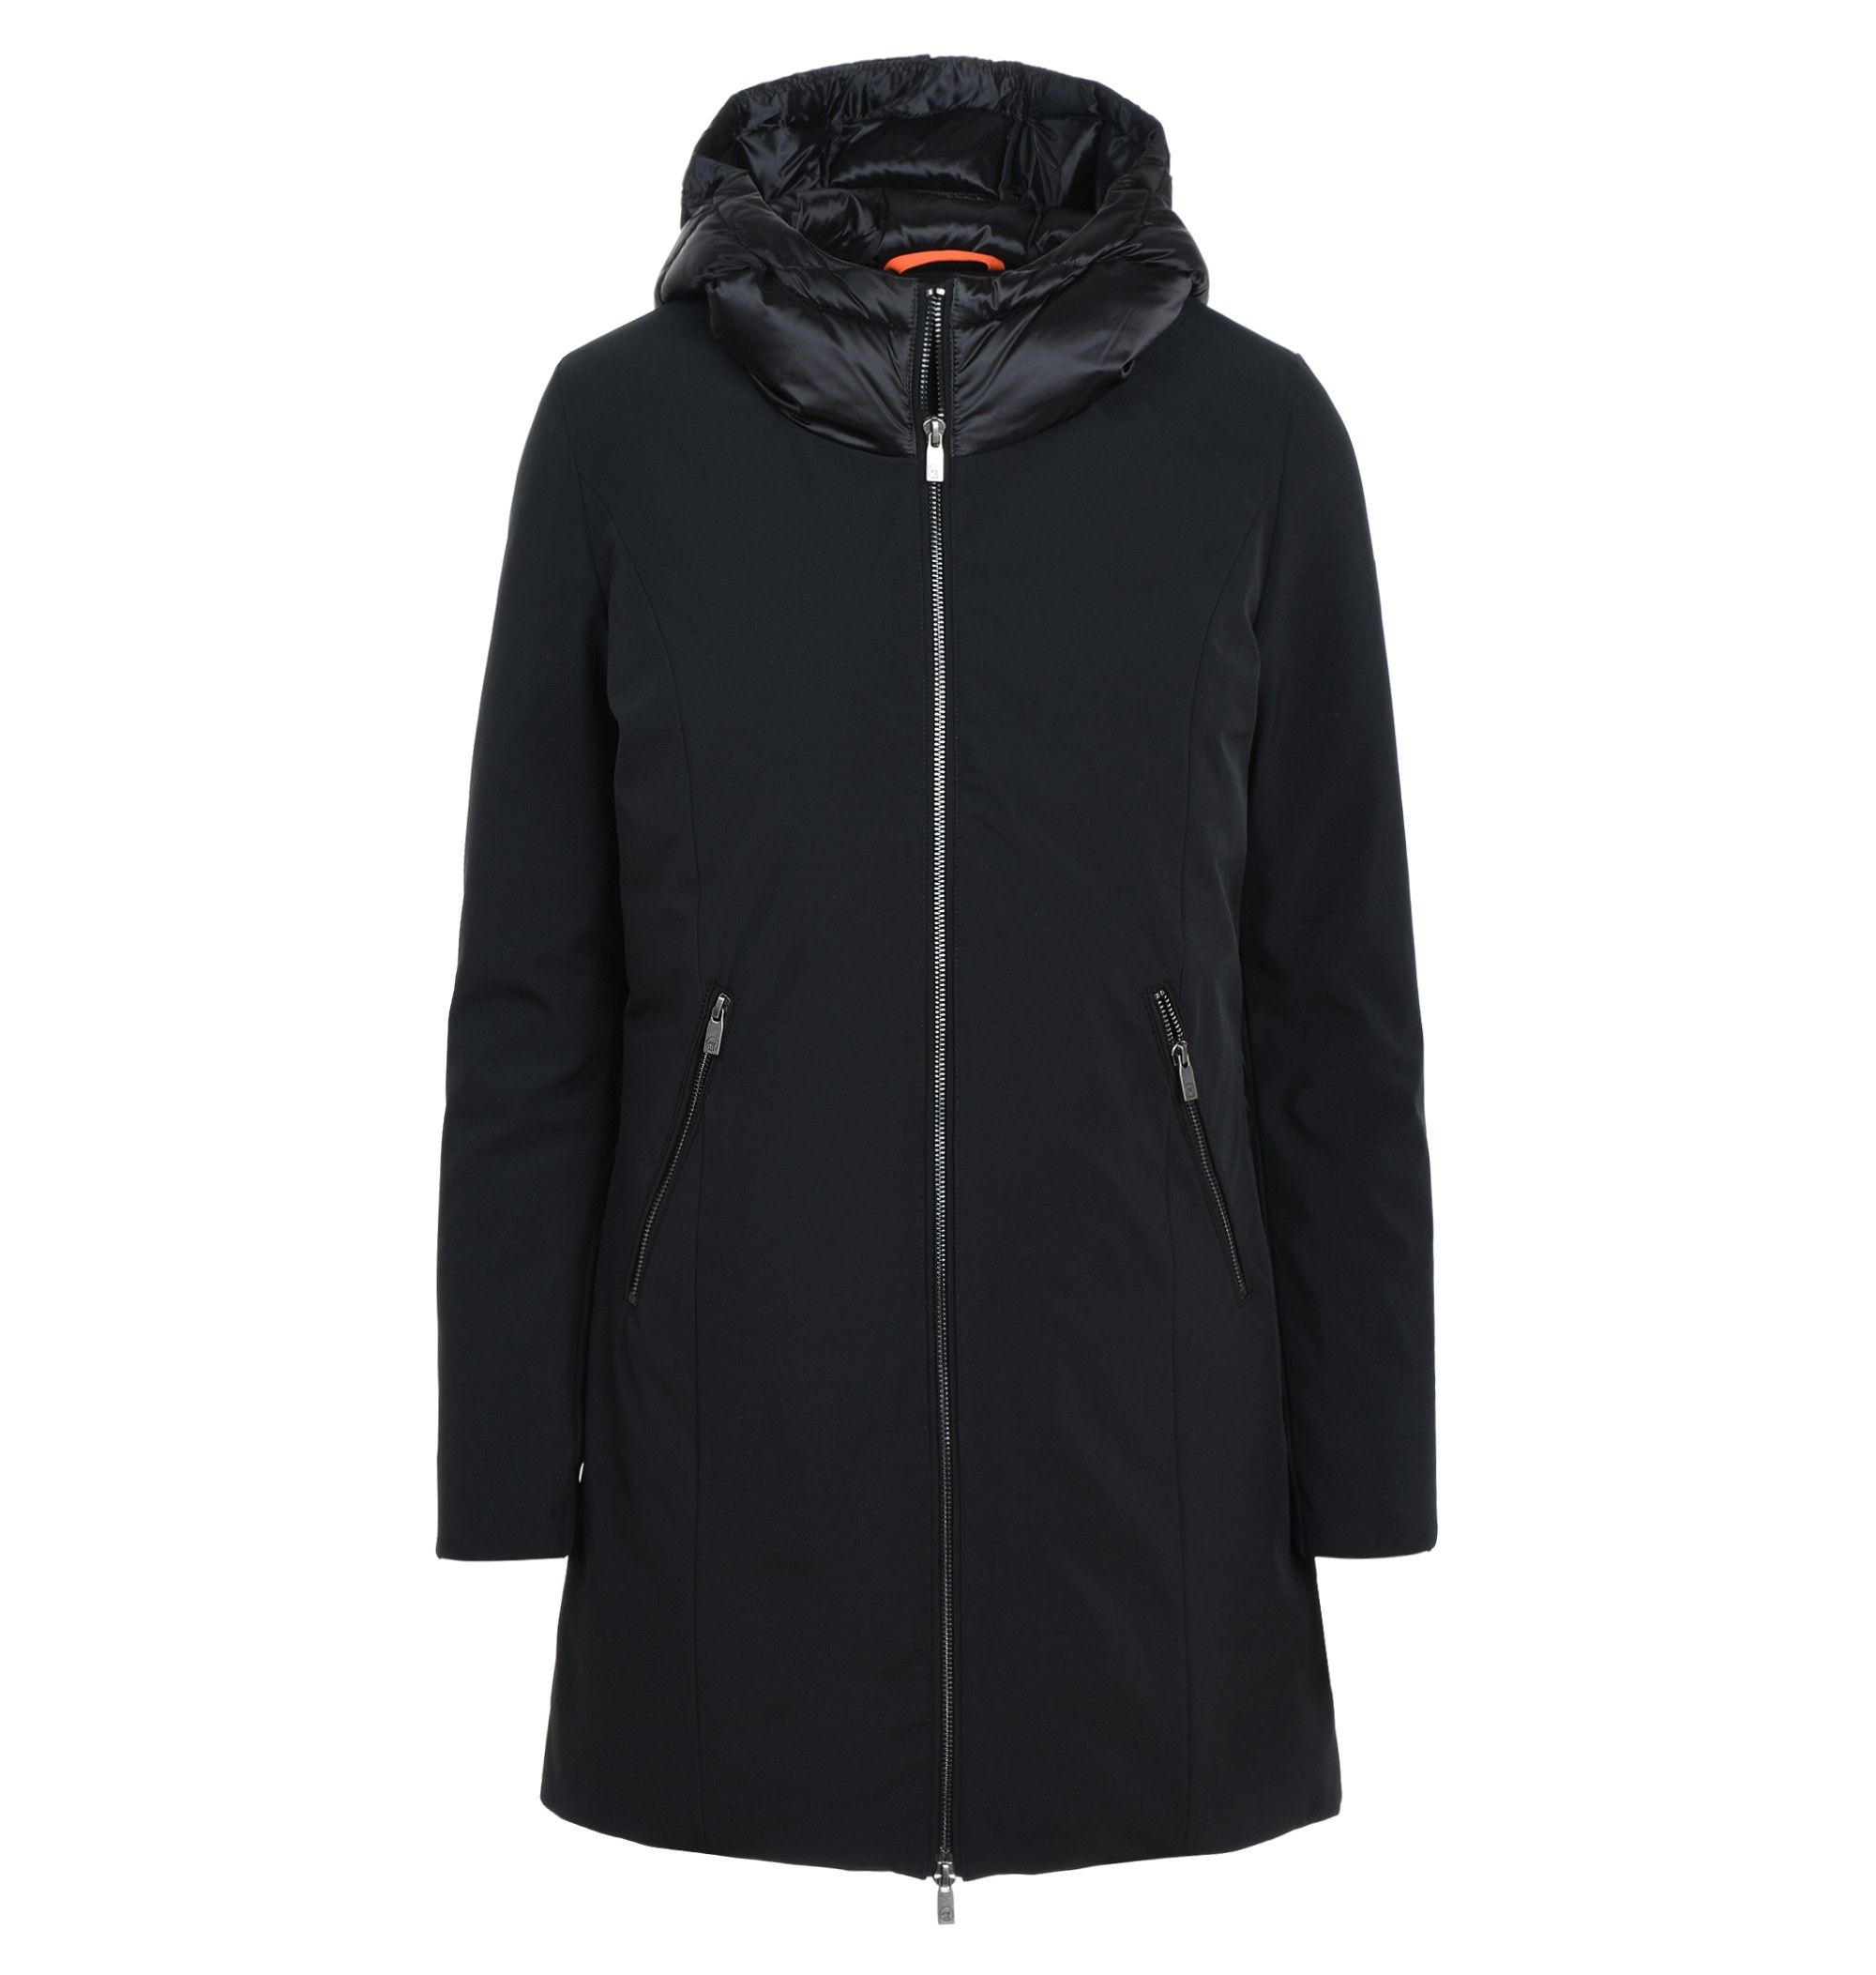 Ciesse CIESSE WOMEN'S BLACK OUTERWEAR JACKET